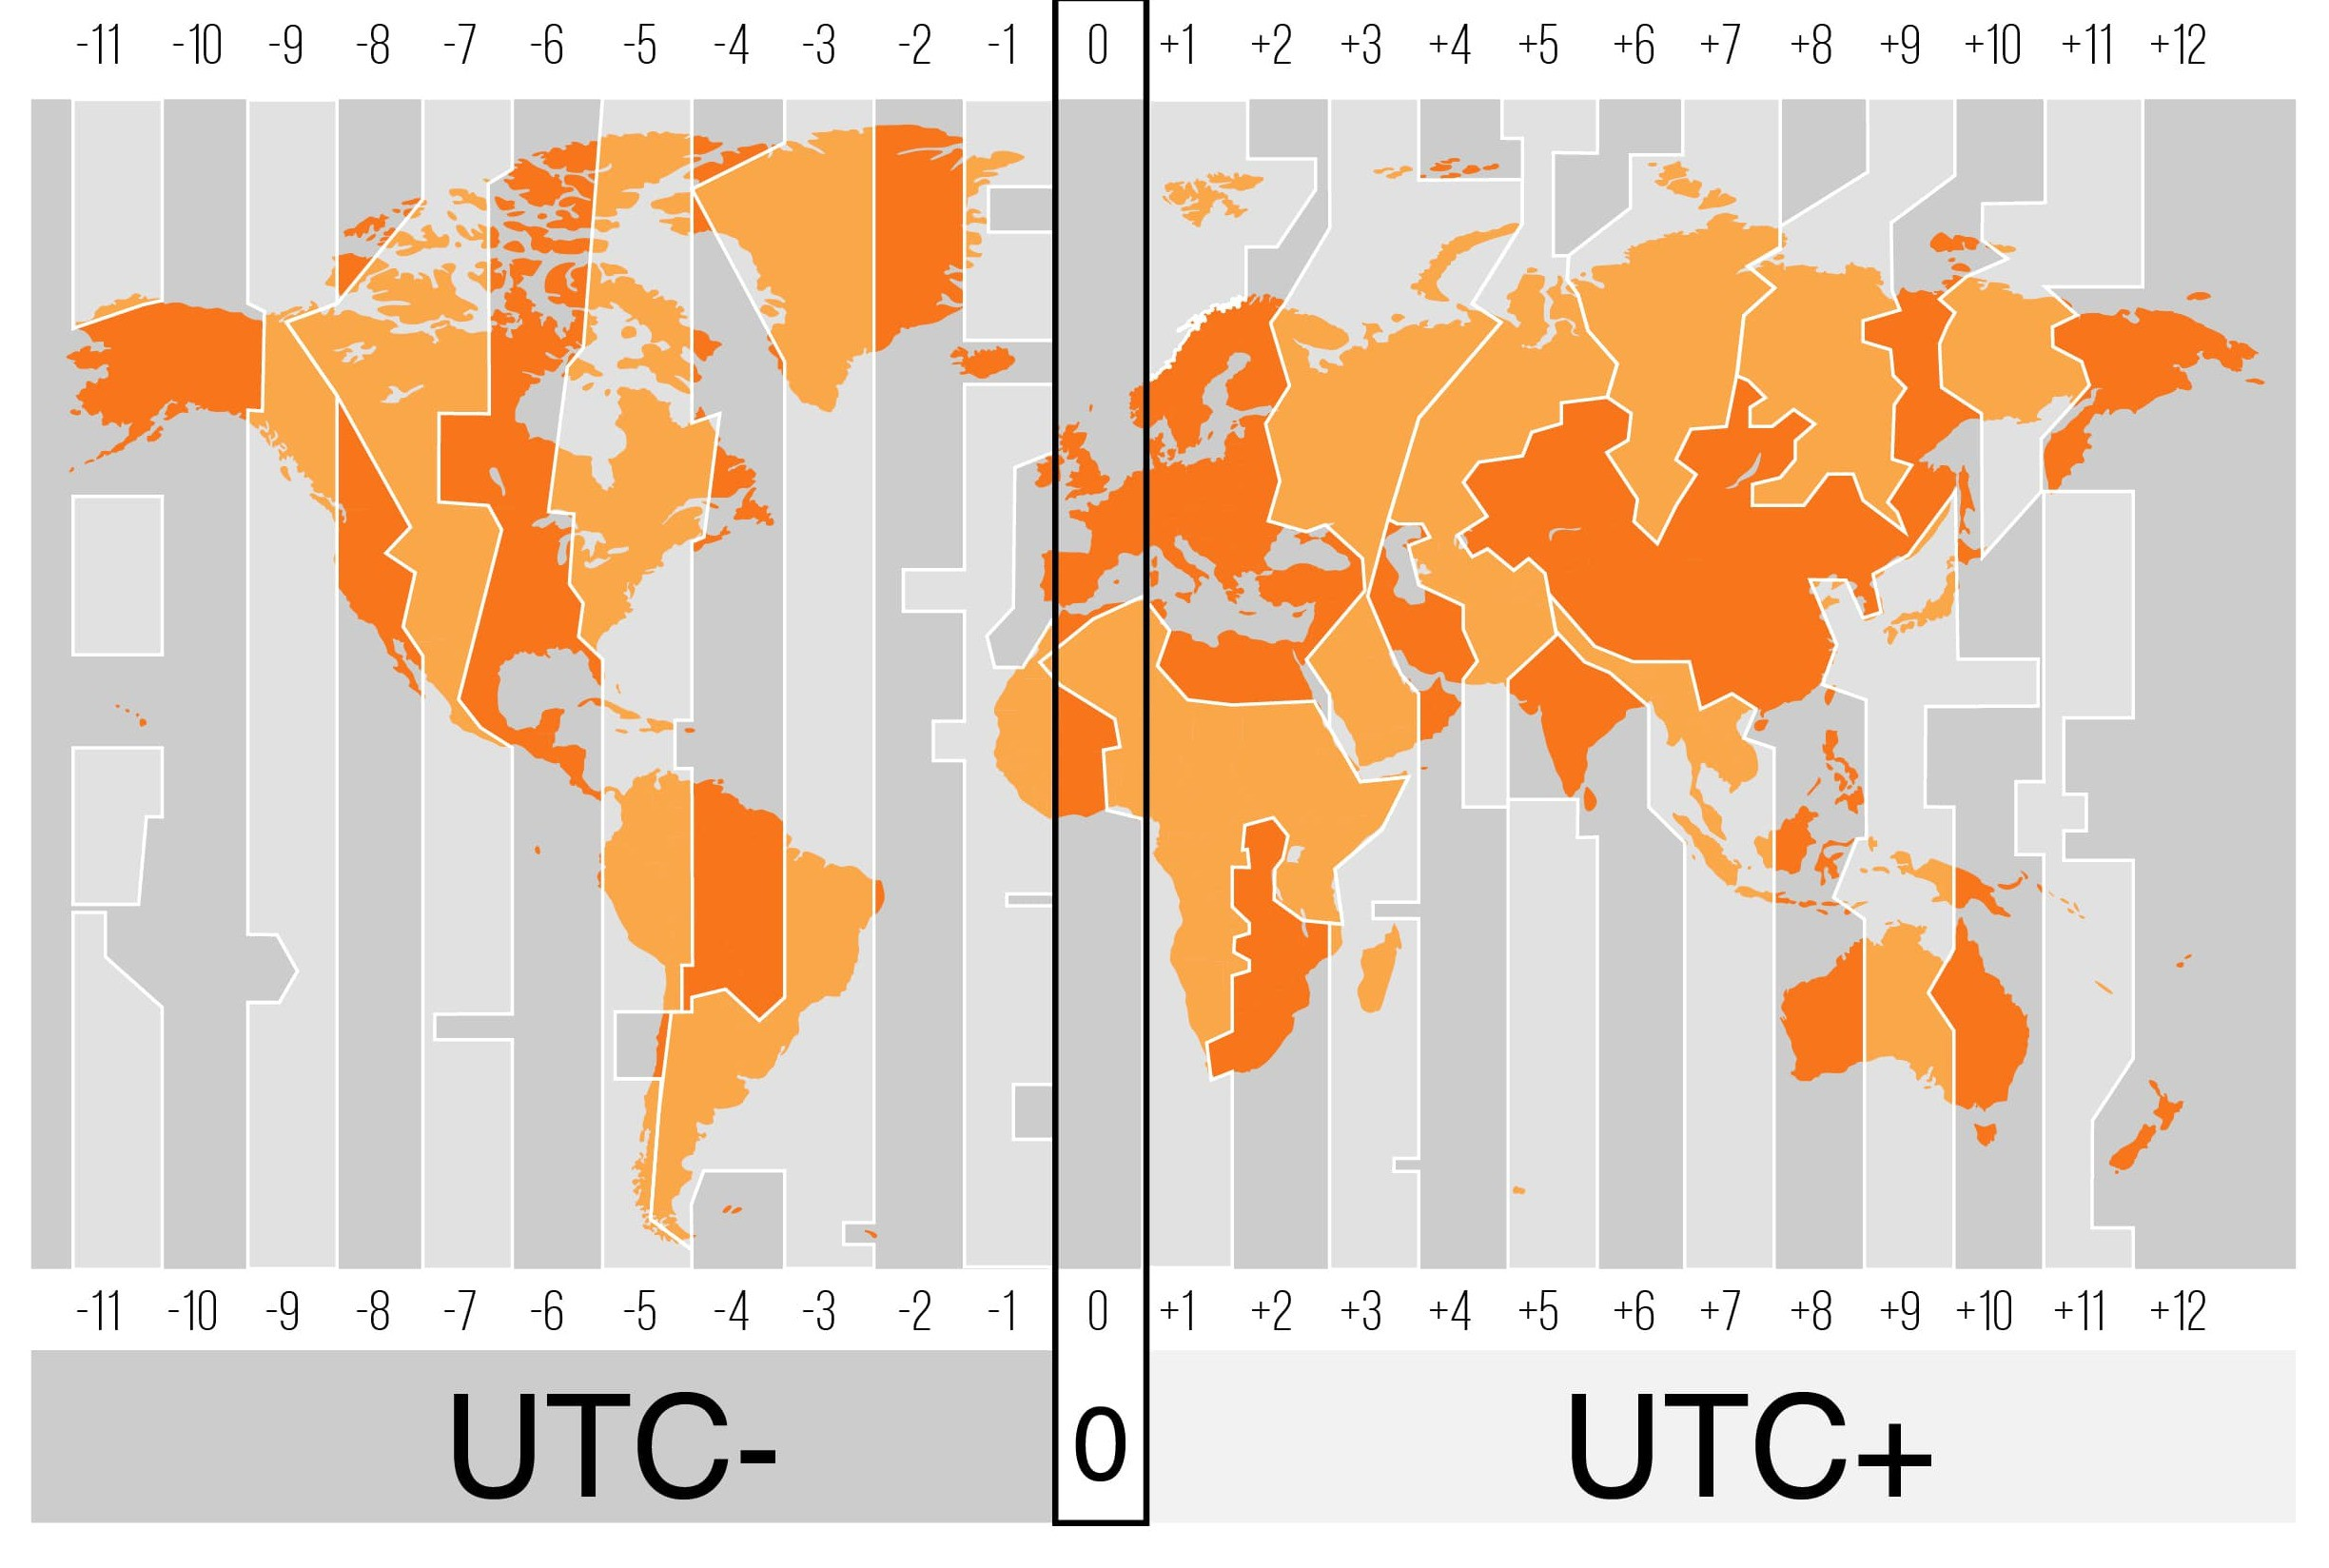 Utc time to my time conversion table